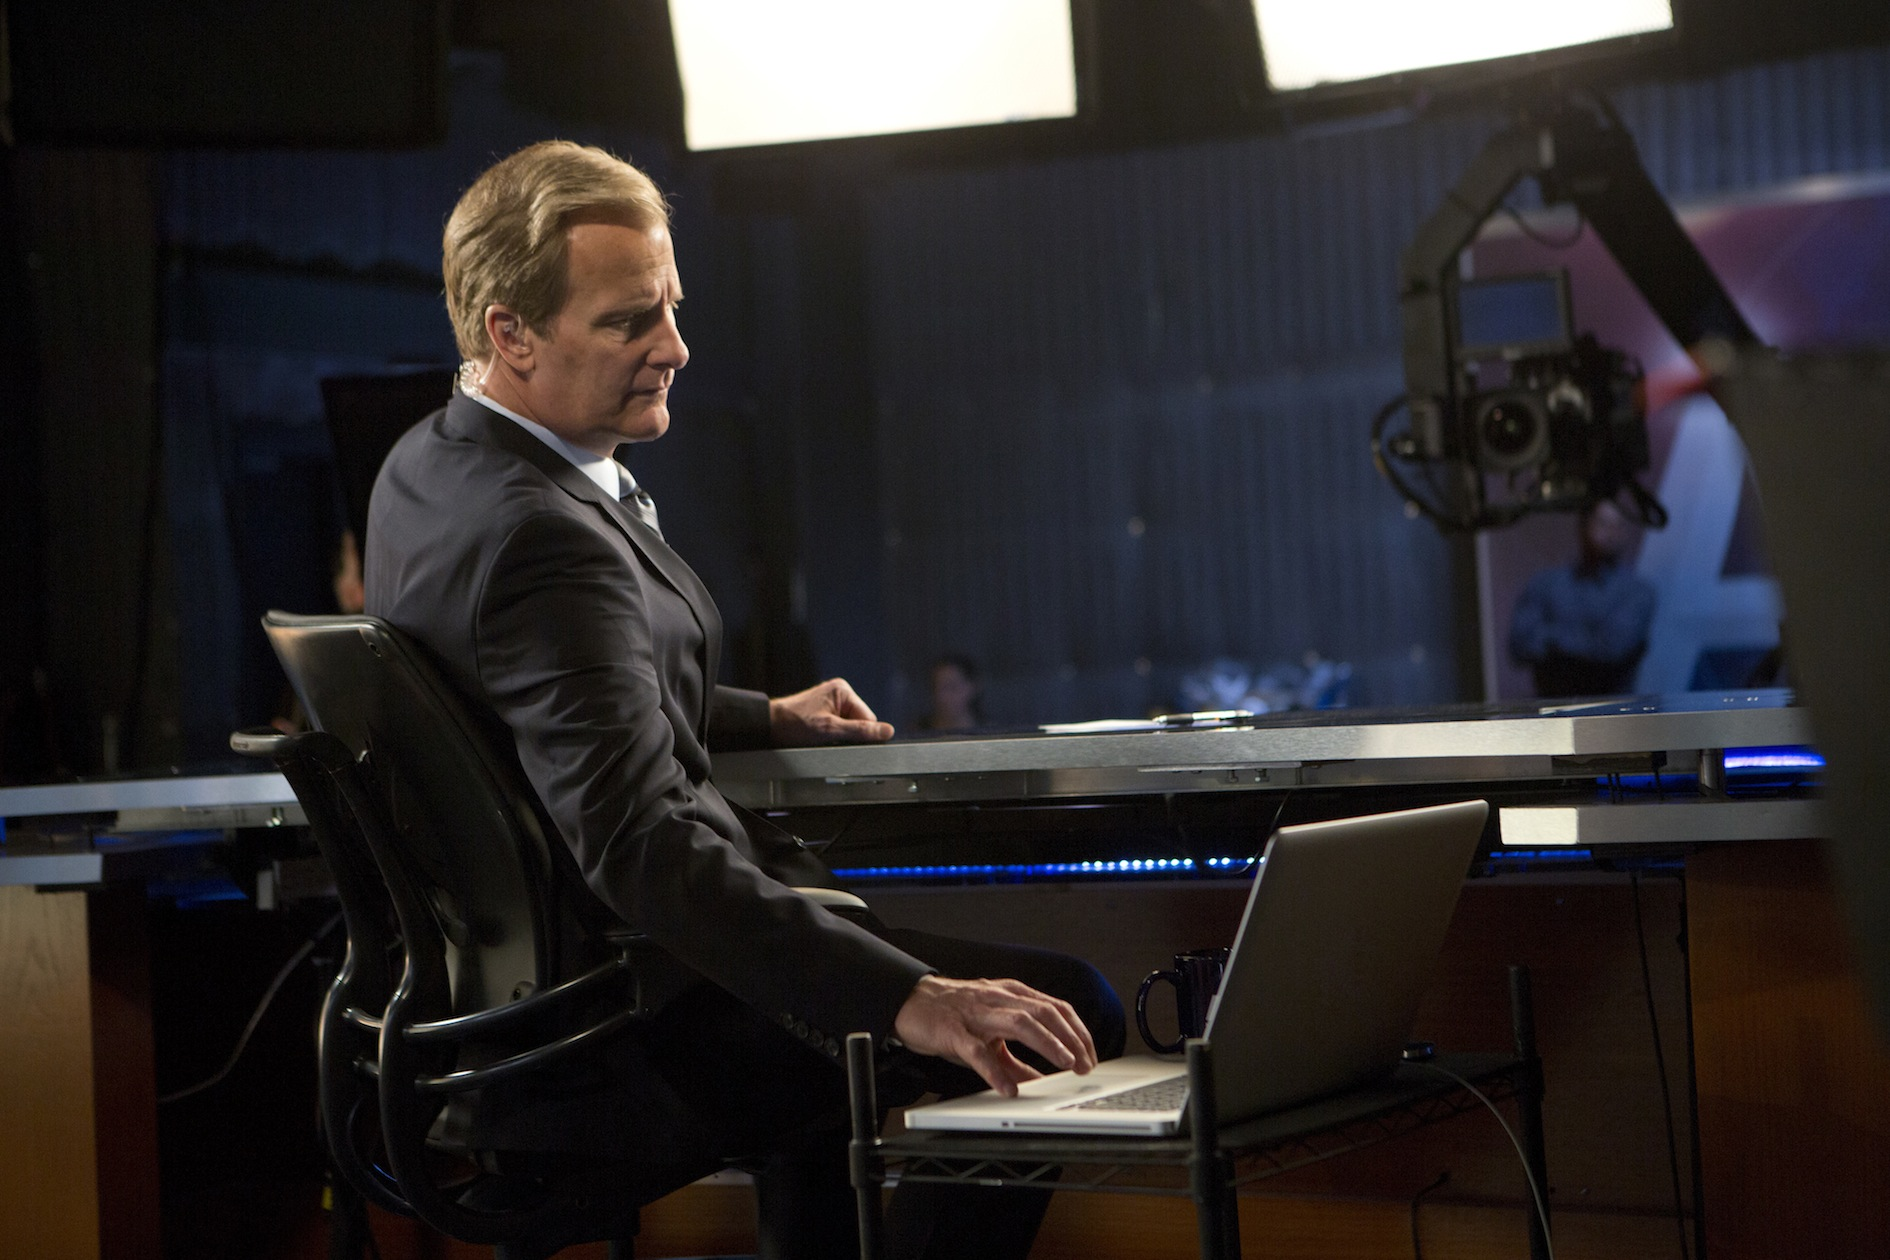 'The Newsroom' (HBO, 2012-2014)